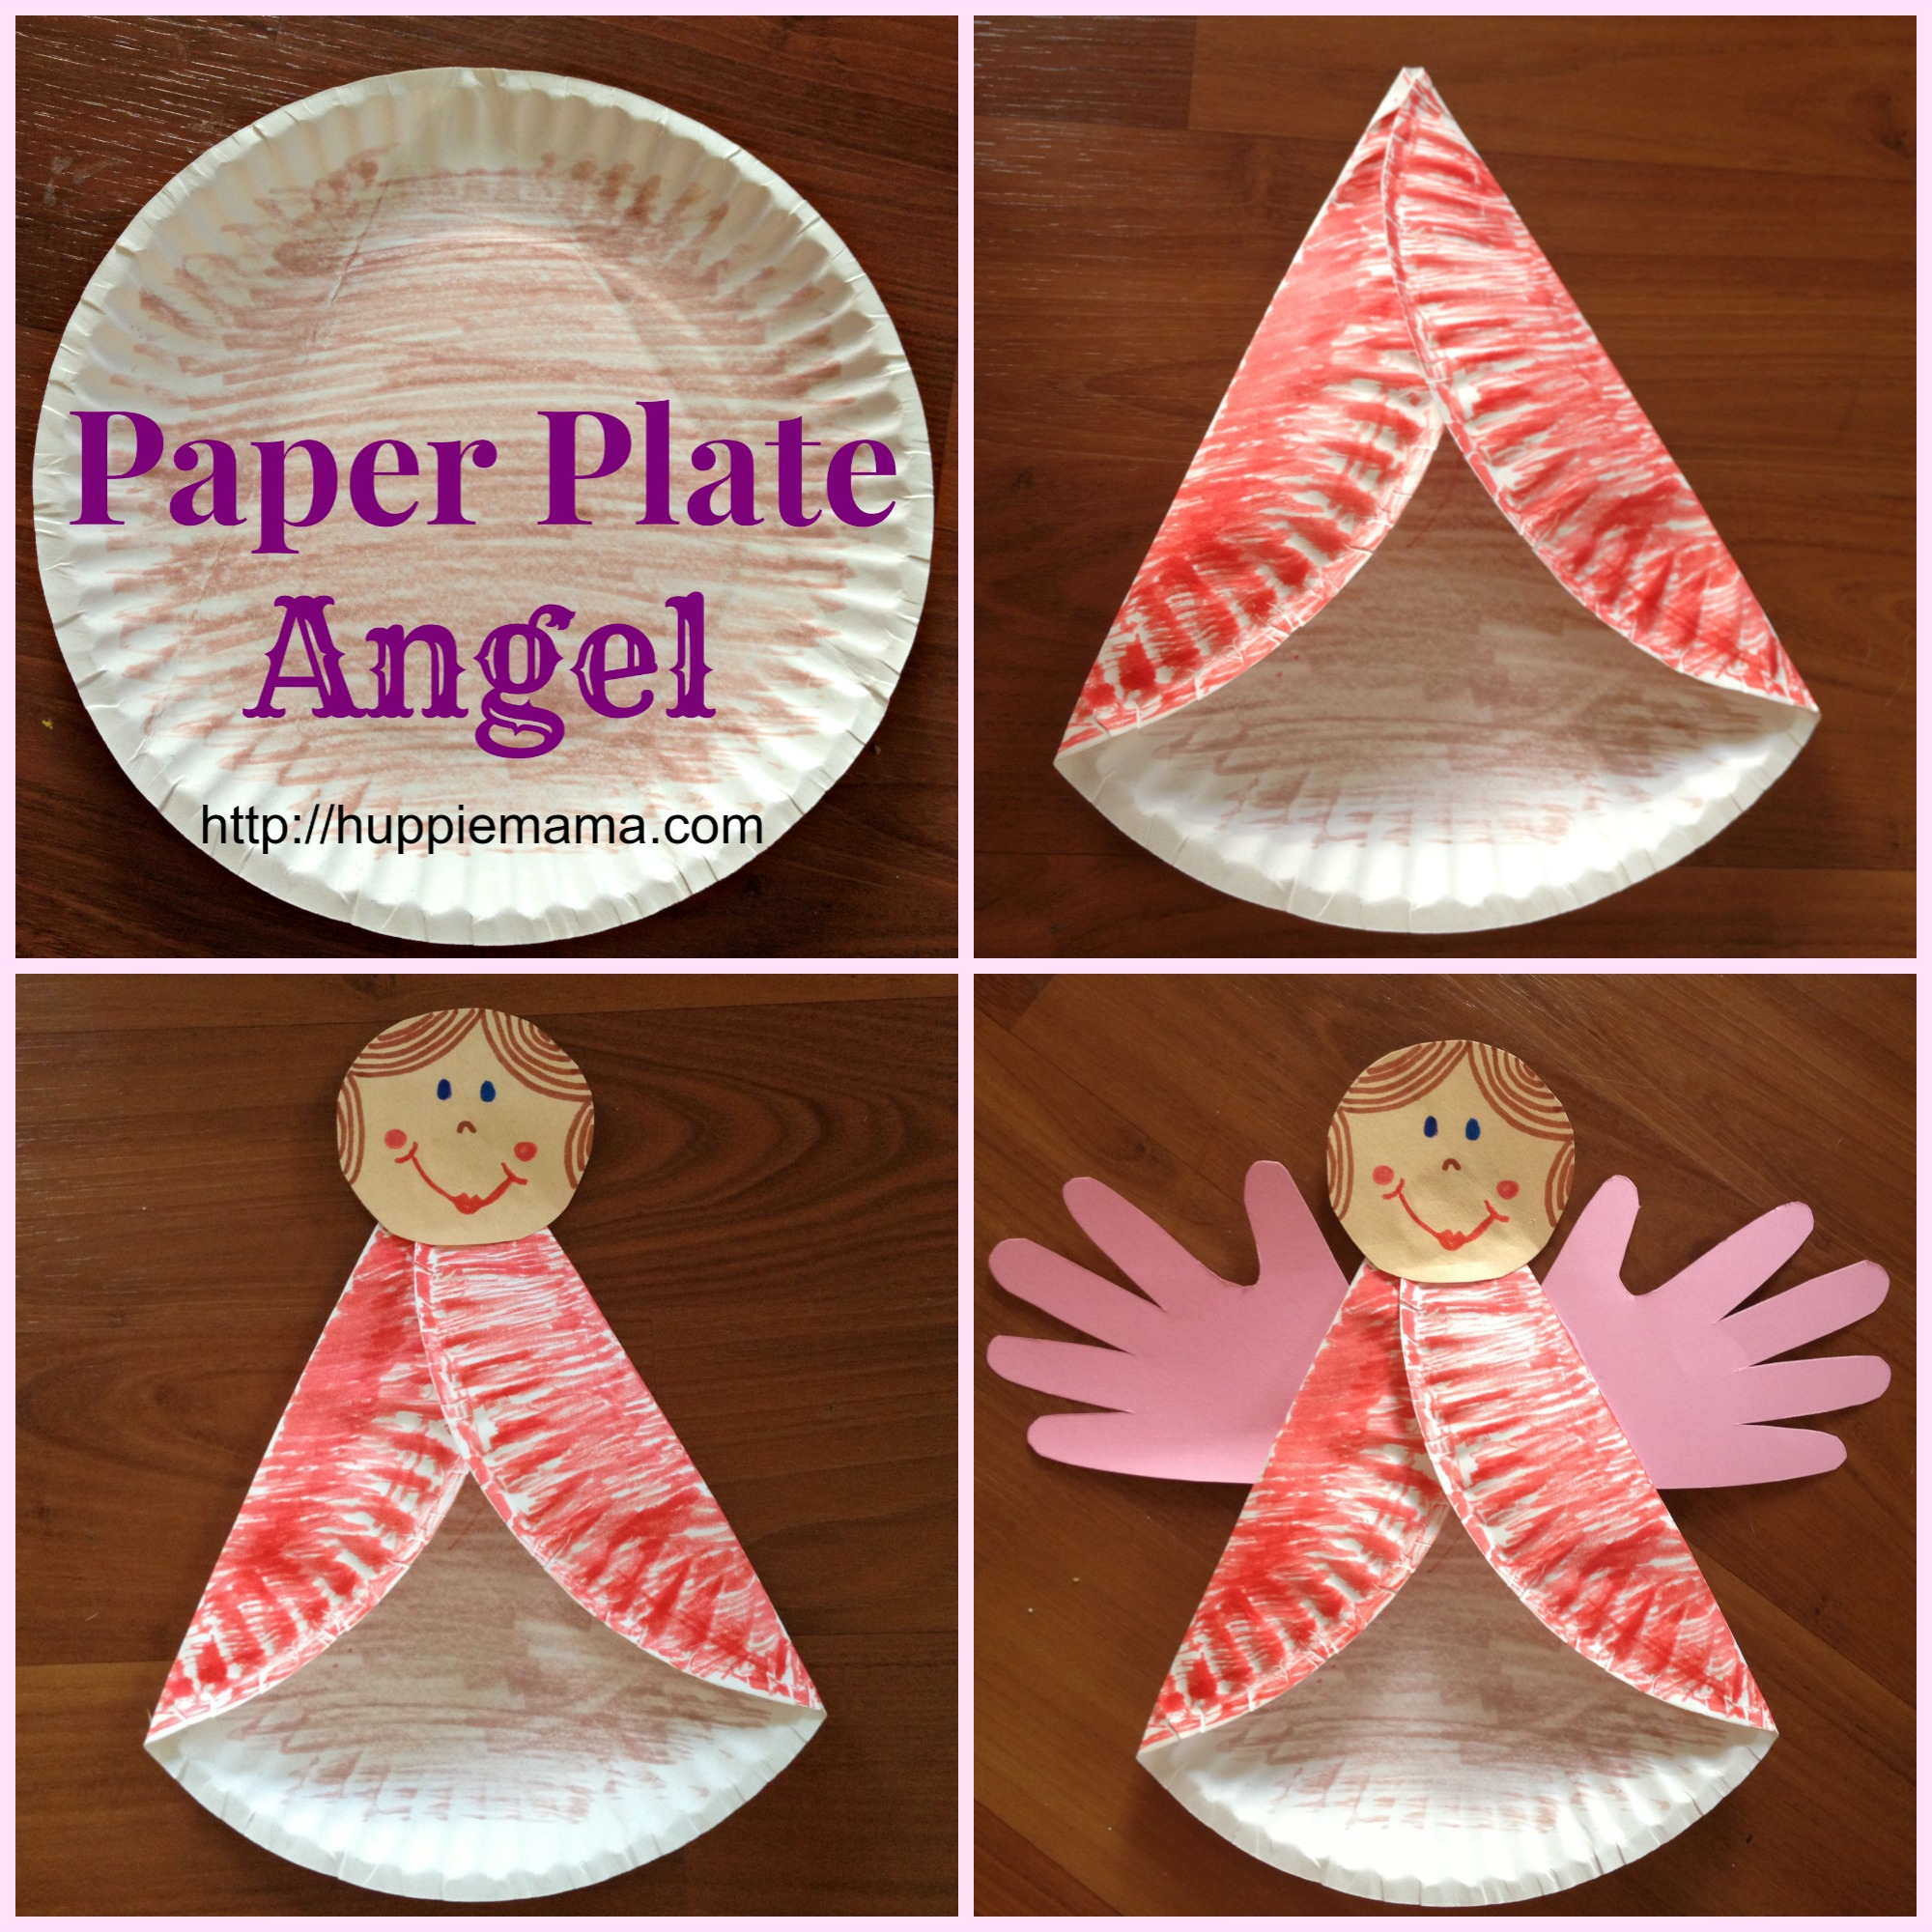 & Christmas Kids Craft: Paper Plate Angel - Our Potluck Family